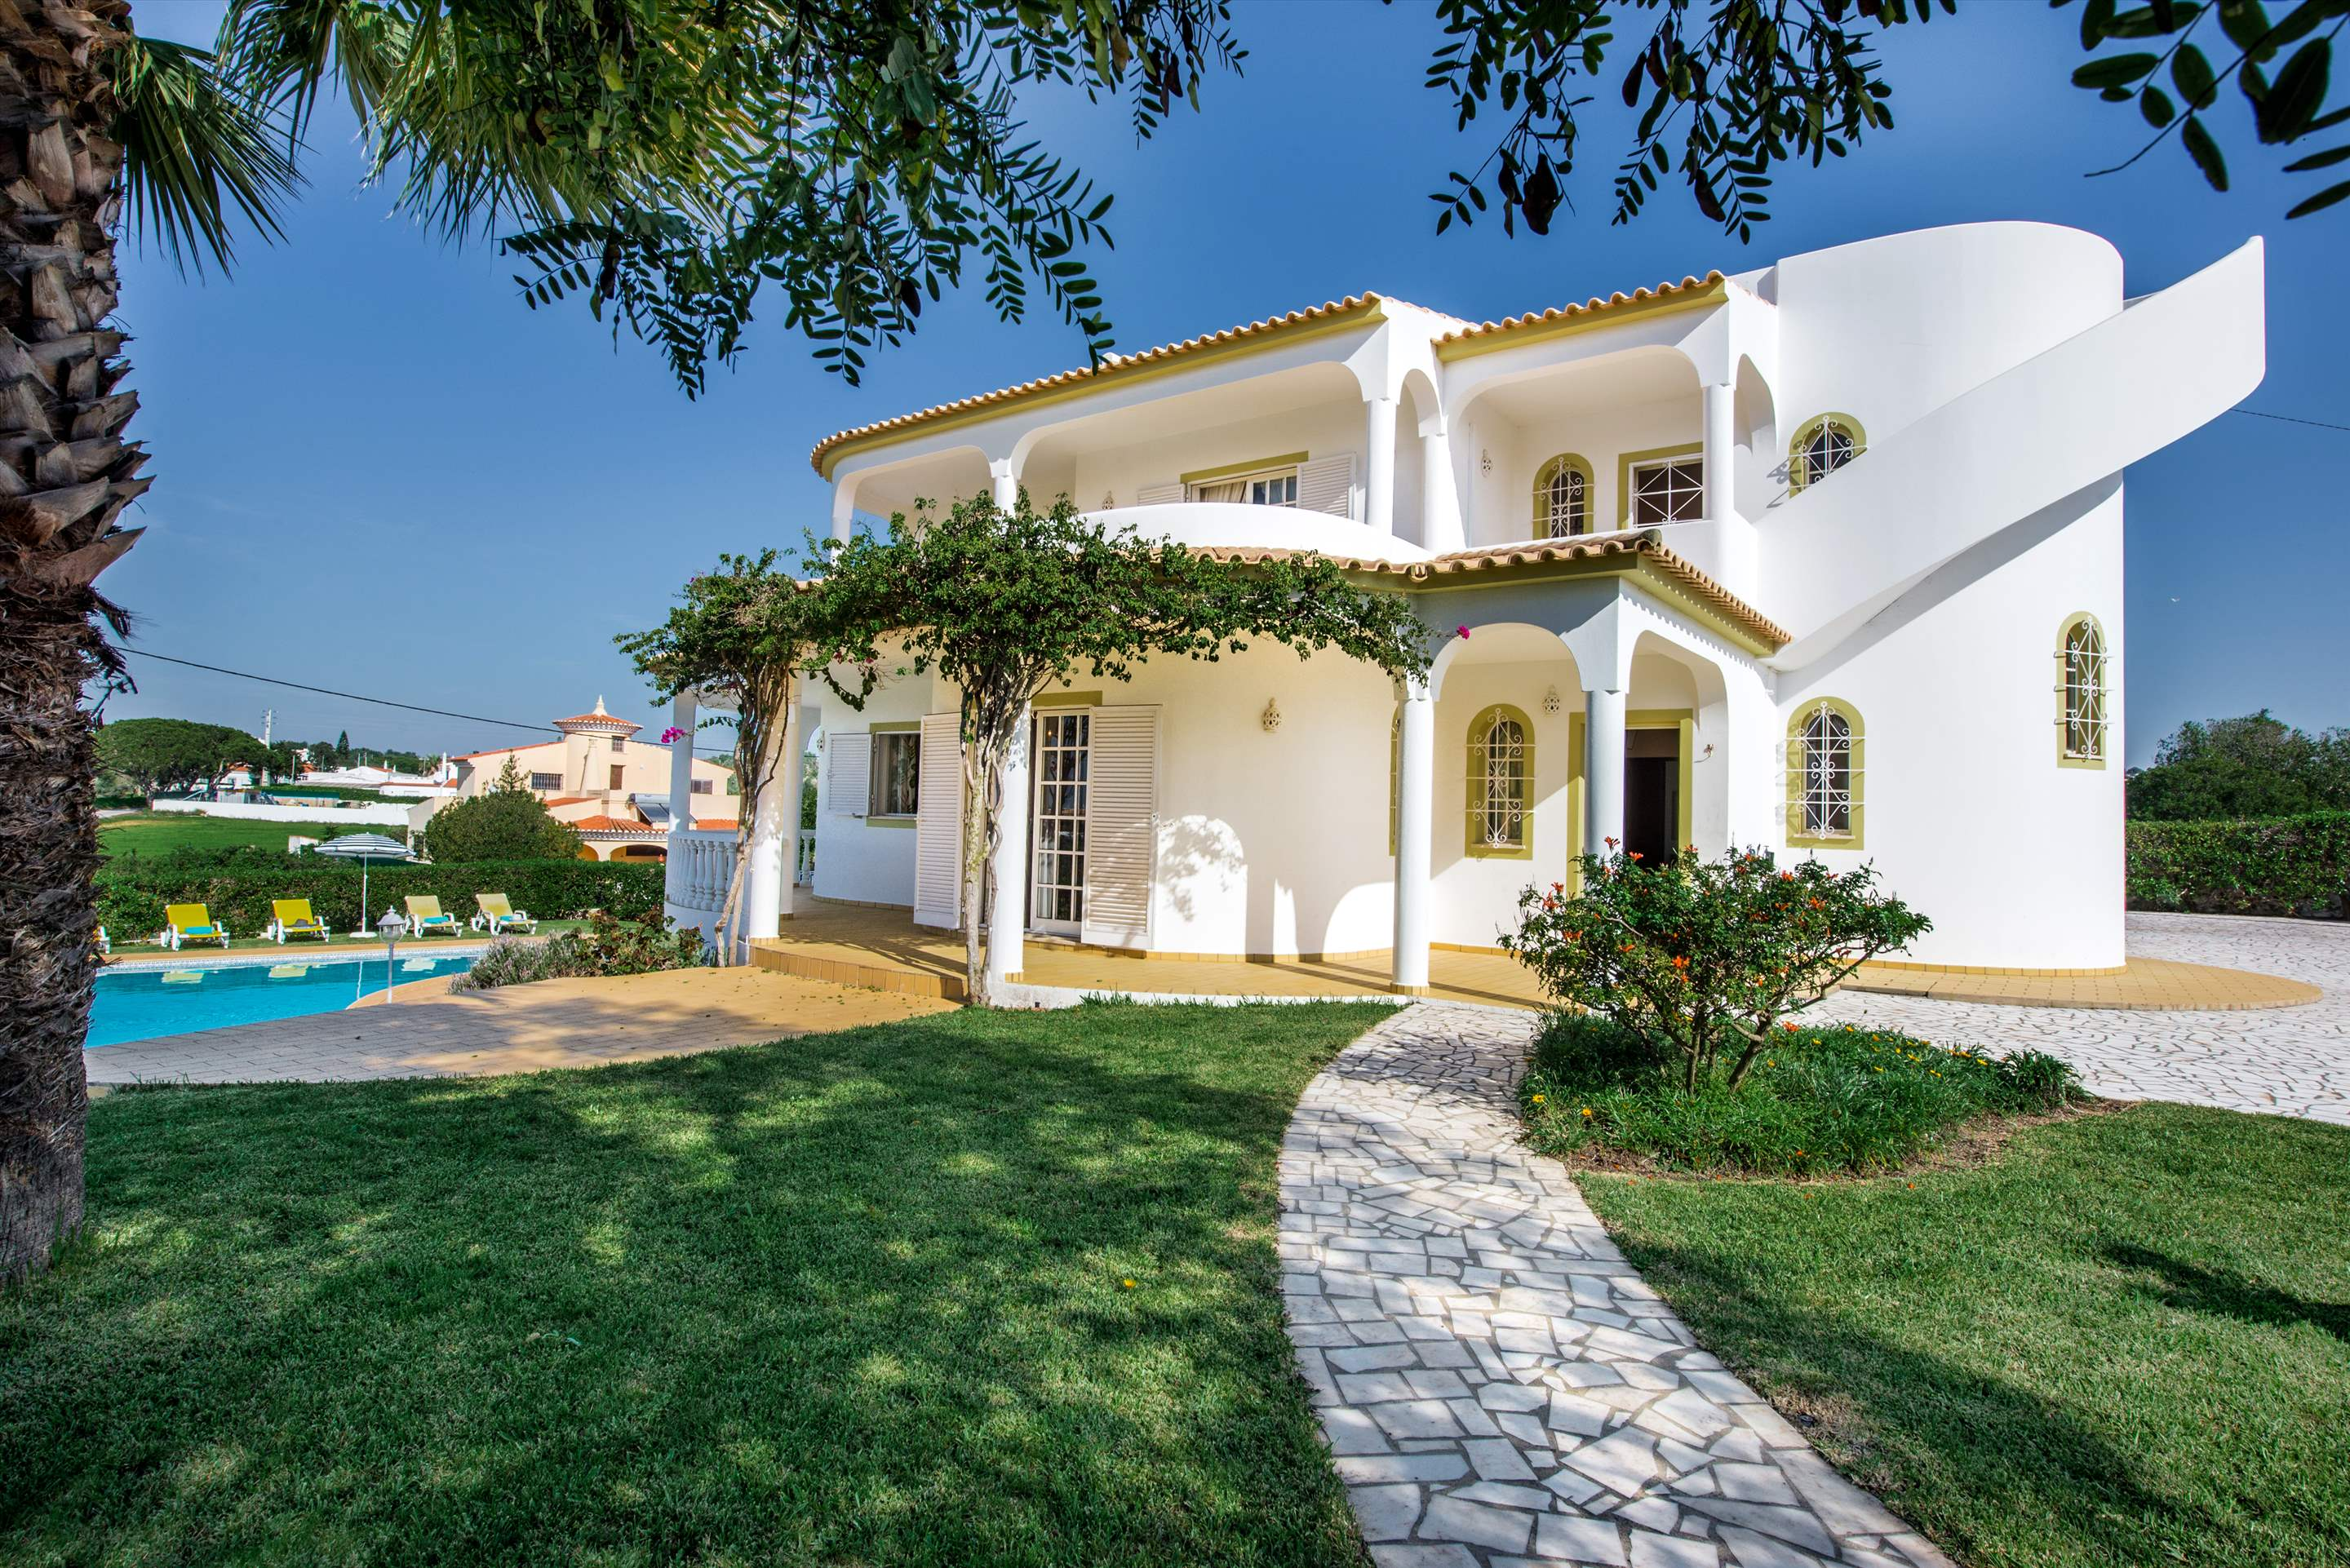 Villa Marco Real, 7-8 persons rate, 4 bedroom villa in Gale, Vale da Parra and Guia, Algarve Photo #11